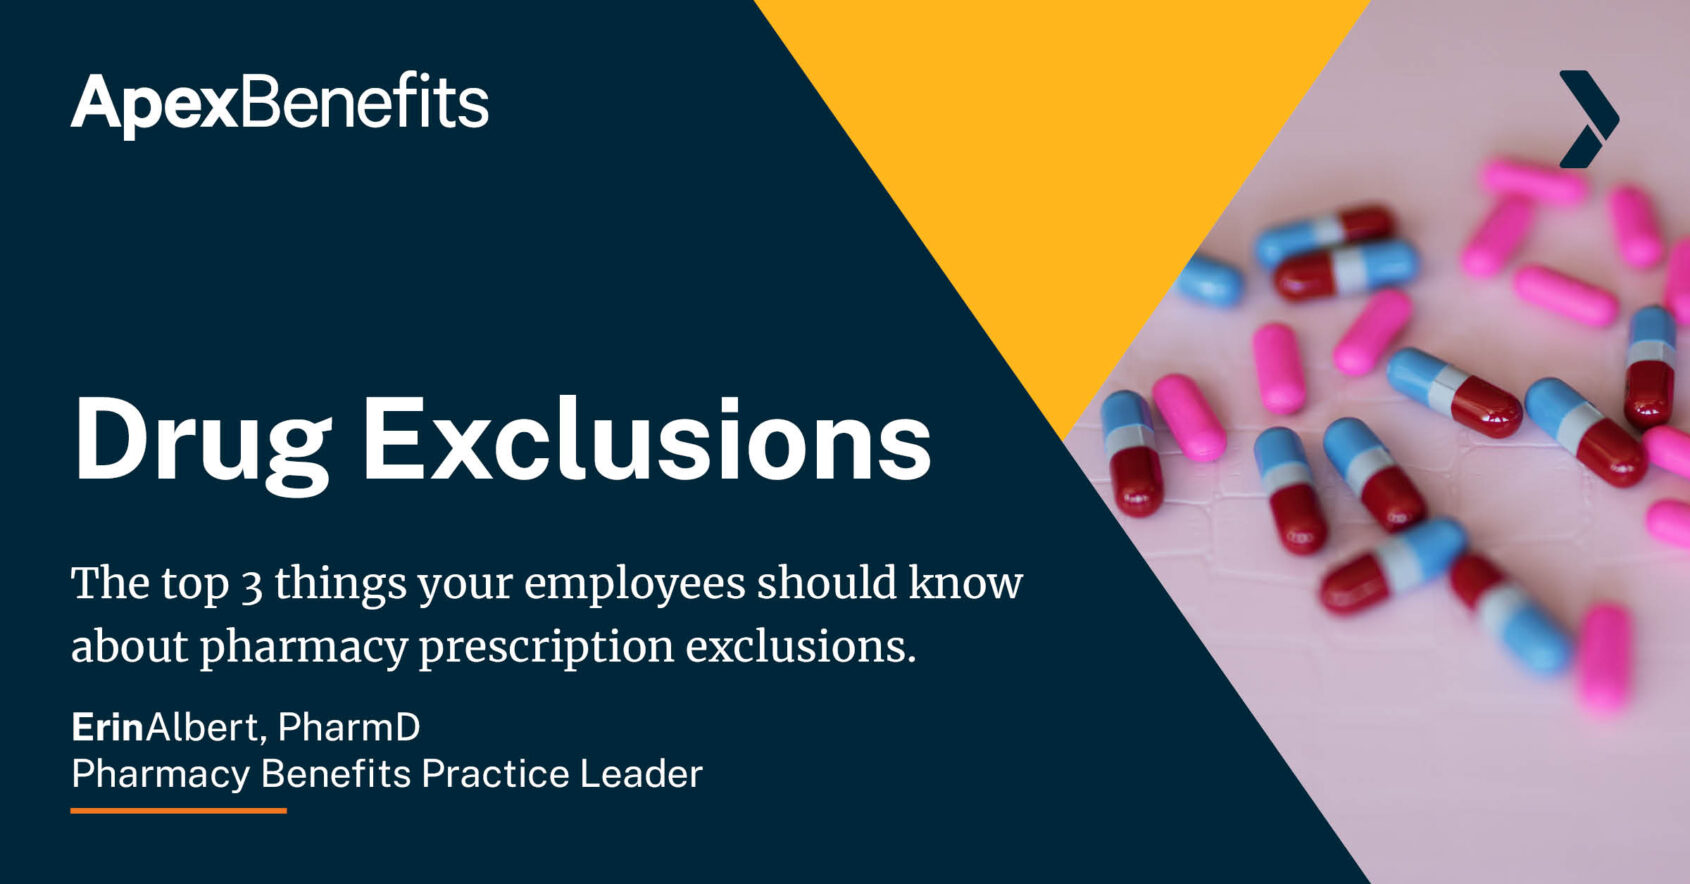 Drug exclusions